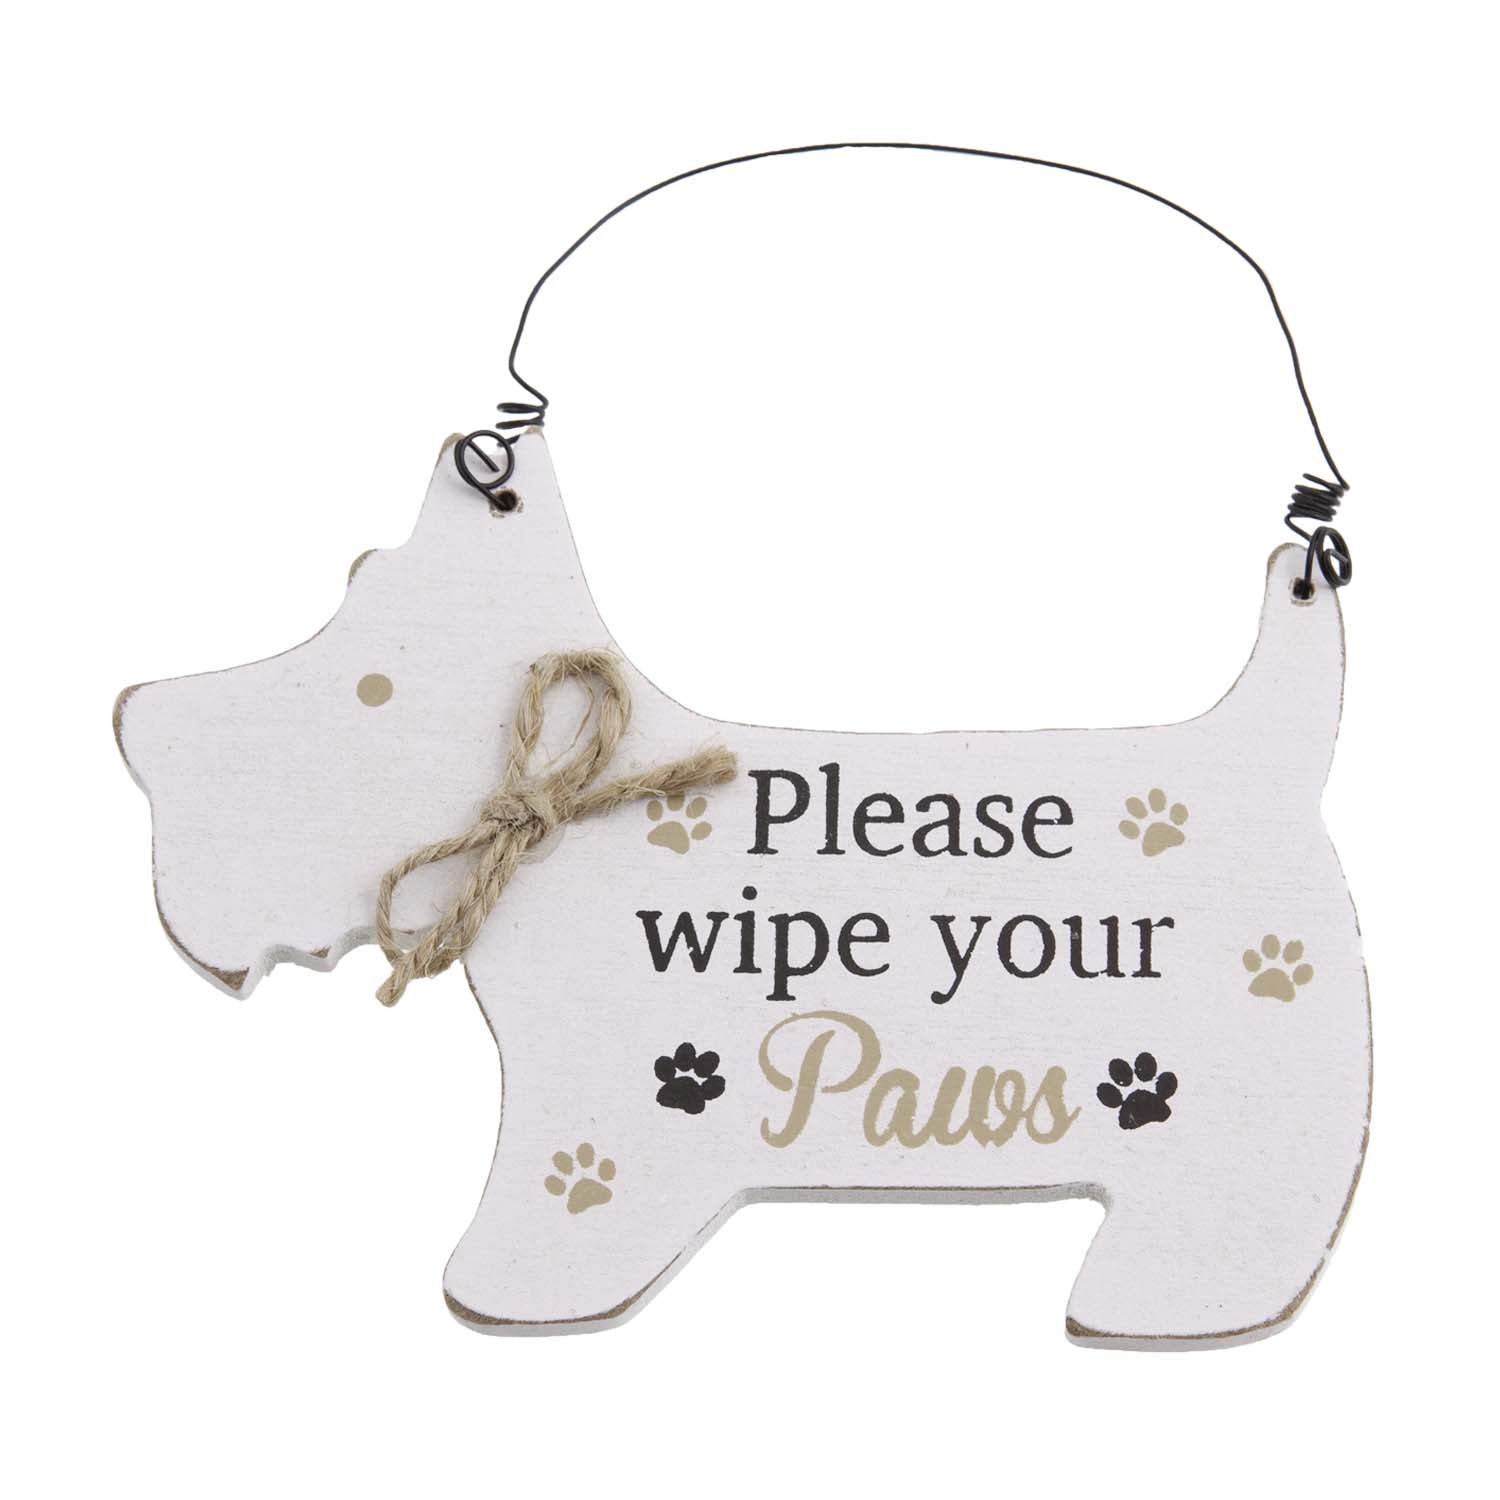 Dog Lover Gifts – White Westie Hanging Sign - Wipe Your Paws, Just Part Of Our Collection Of Signs Available At www.dogkrazygifts.co.uk